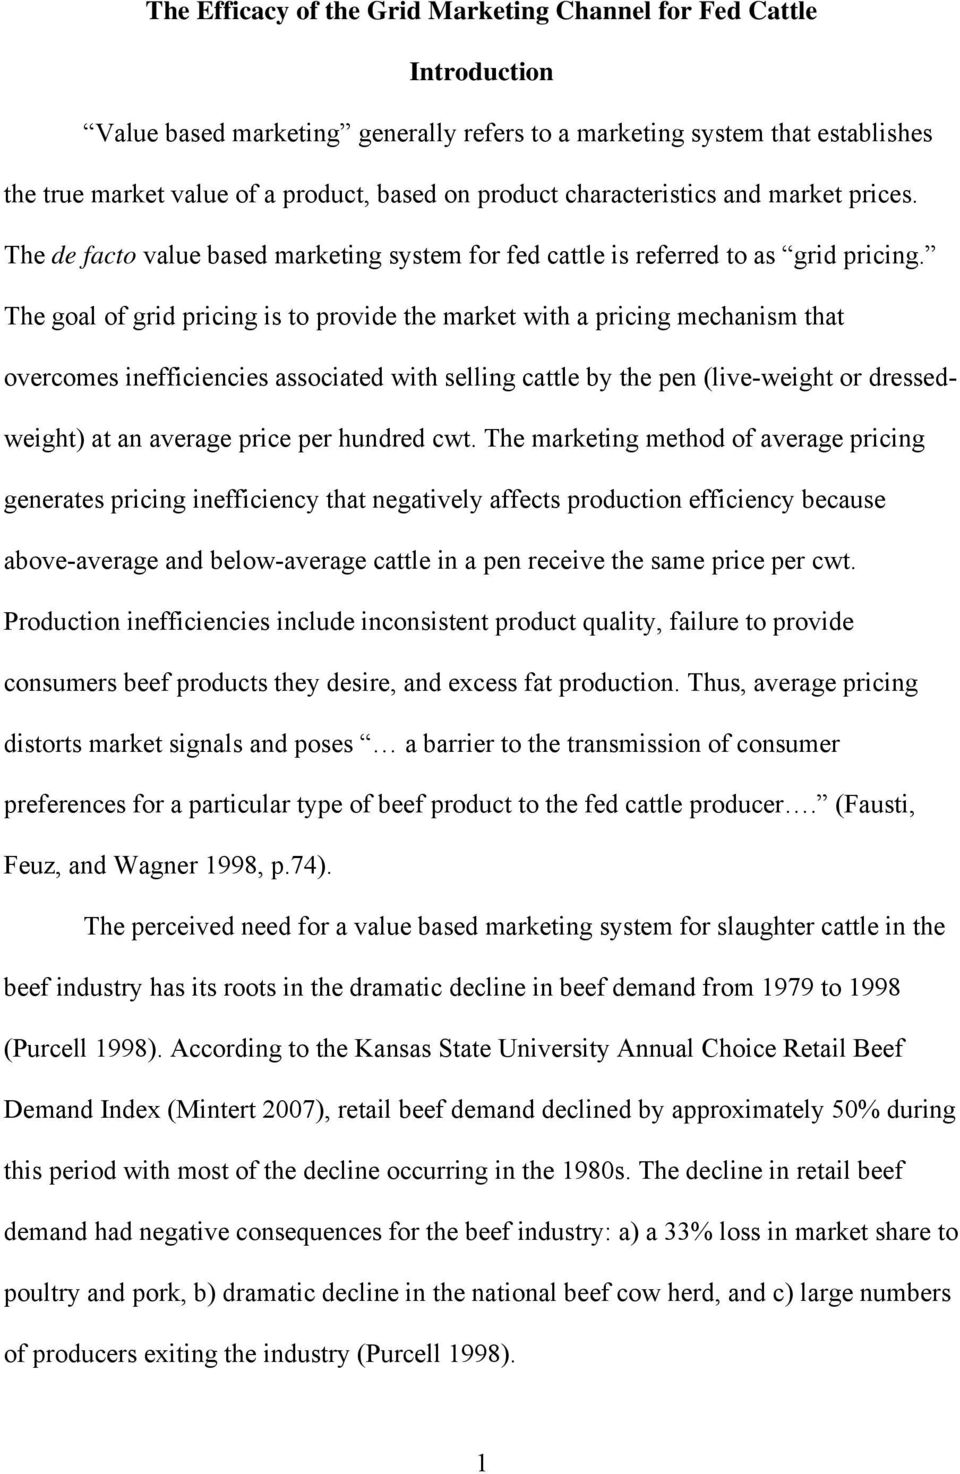 The goal of grid pricing is to provide the market with a pricing mechanism that overcomes inefficiencies associated with selling cattle by the pen (live-weight or dressedweight) at an average price